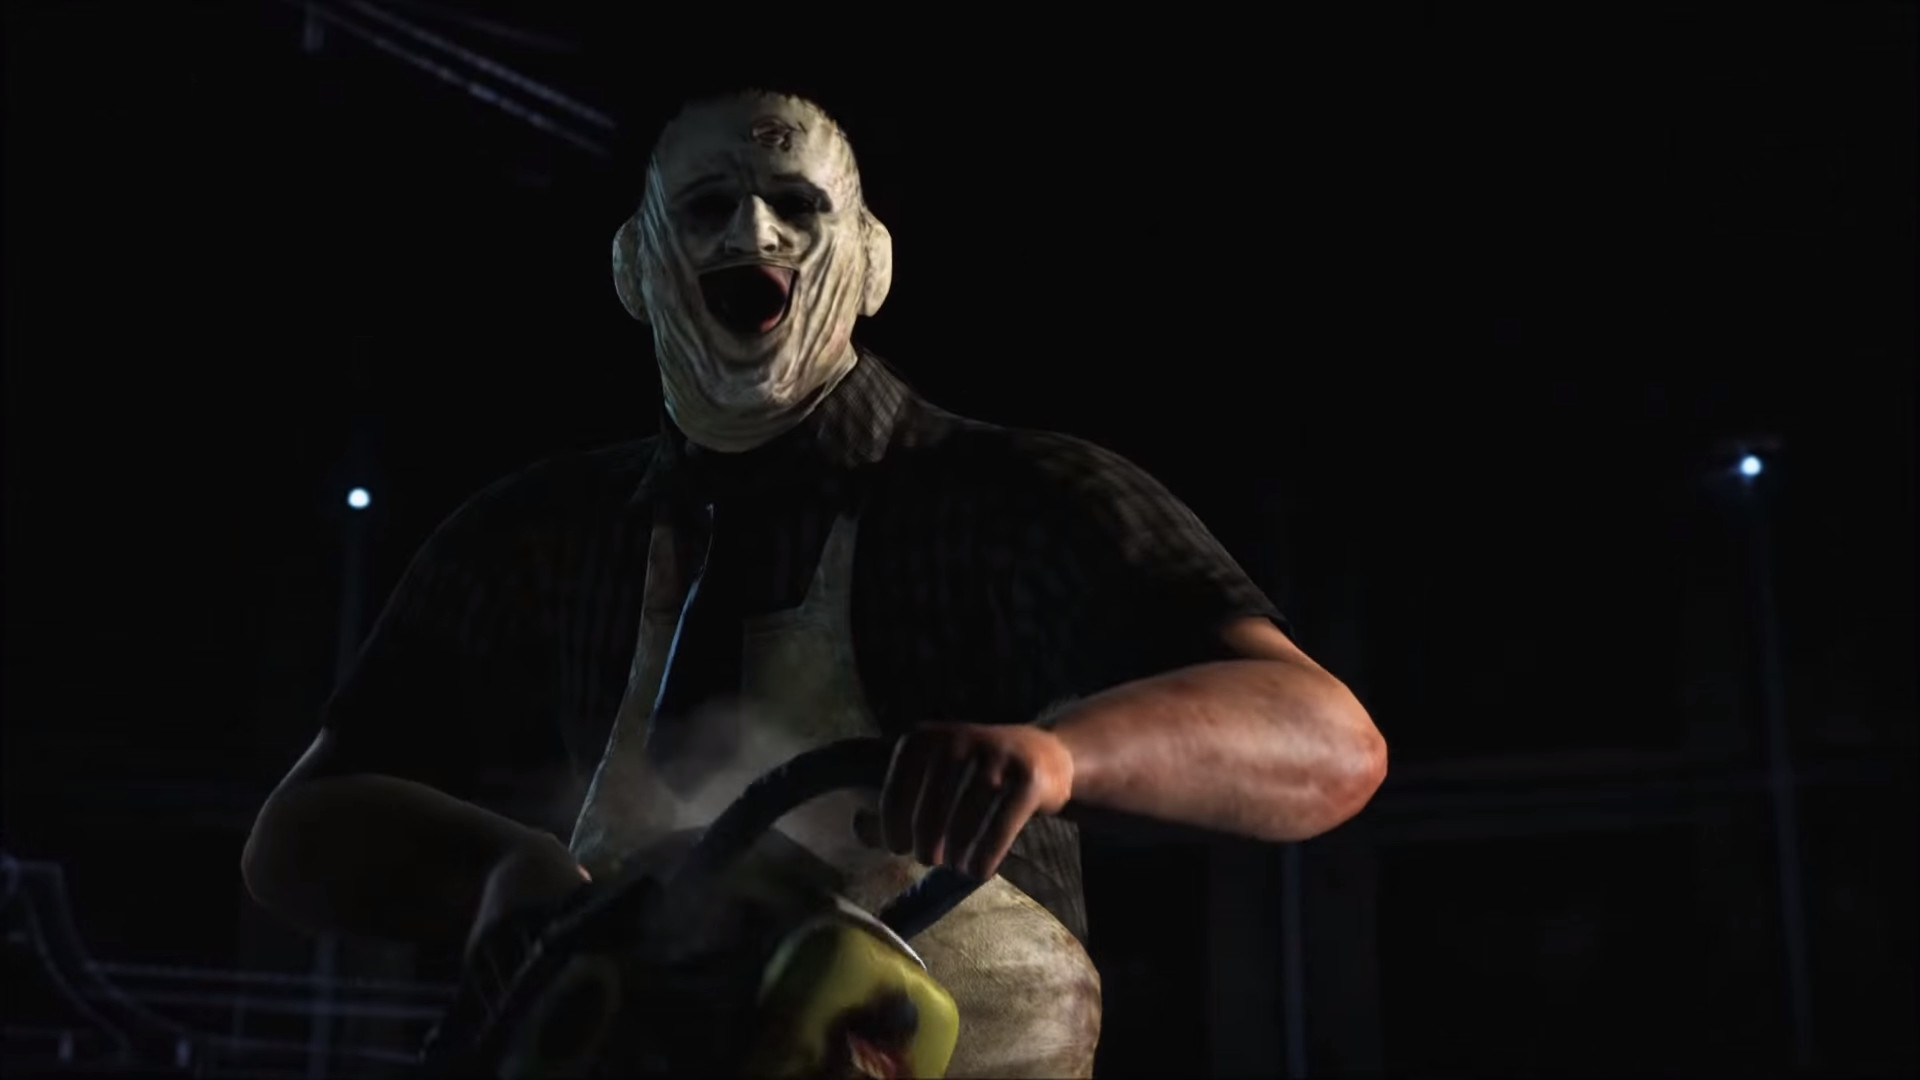 leatherface mkx game wallpaper – photo #11